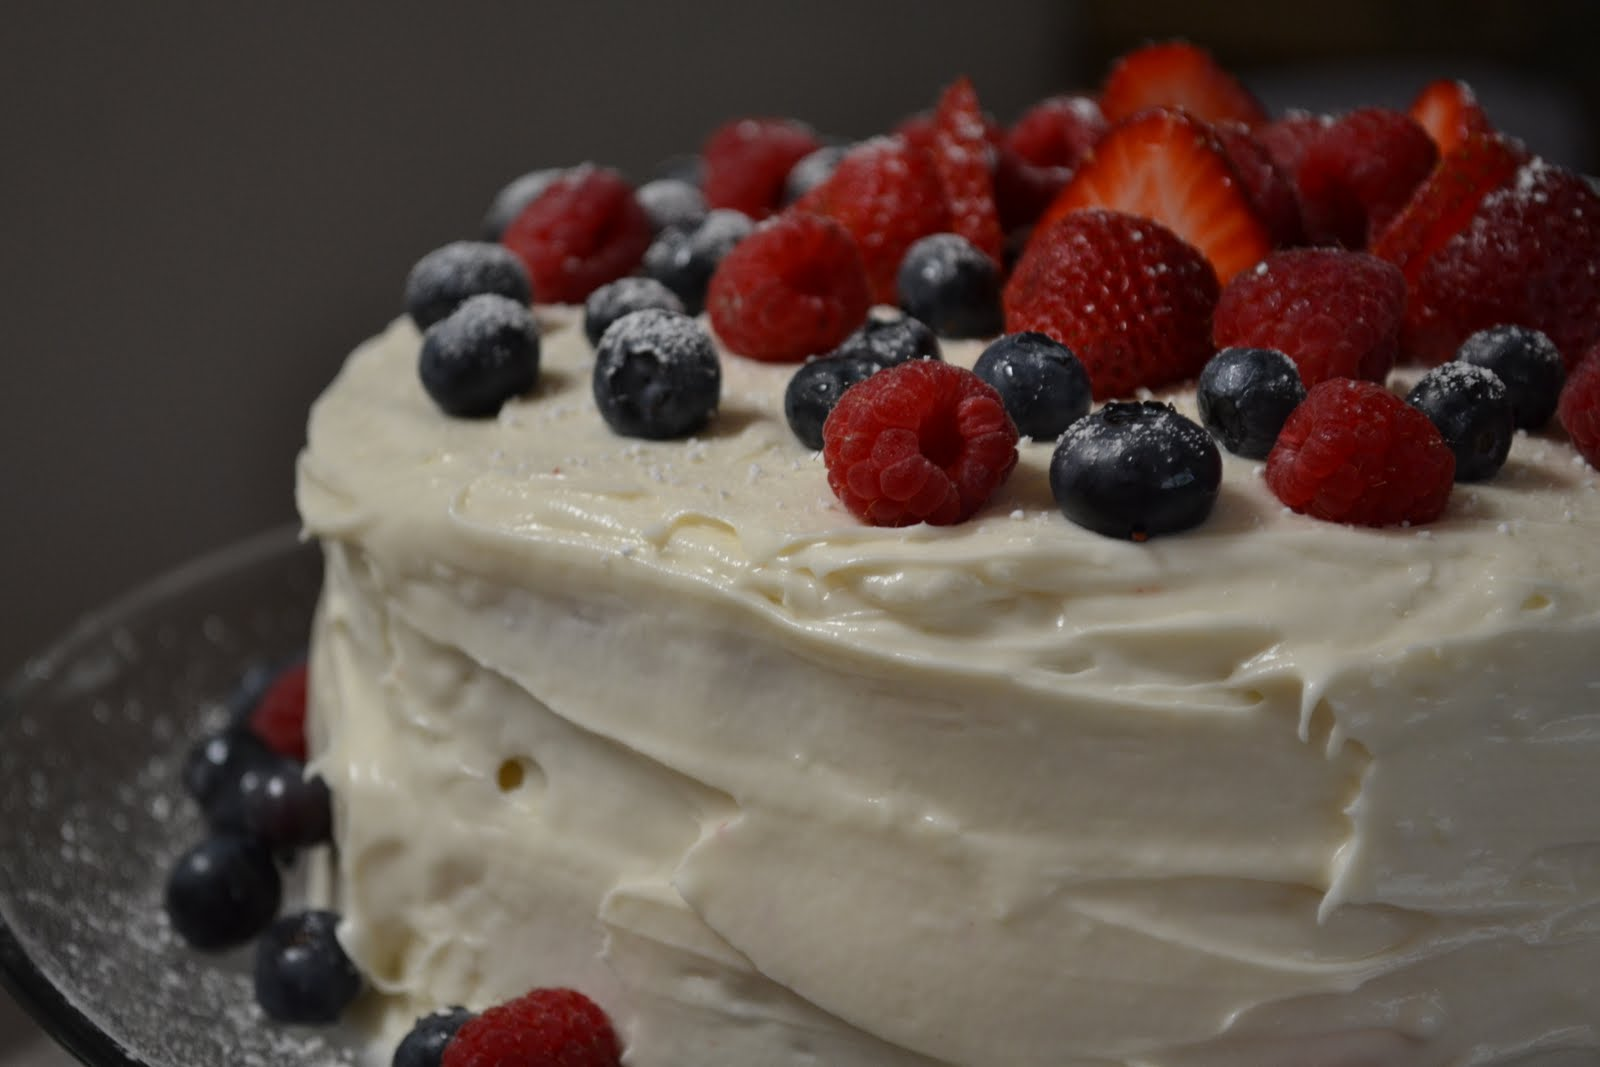 ... : Red Velvet Cake with Raspberries, Strawberries, and Blueberries